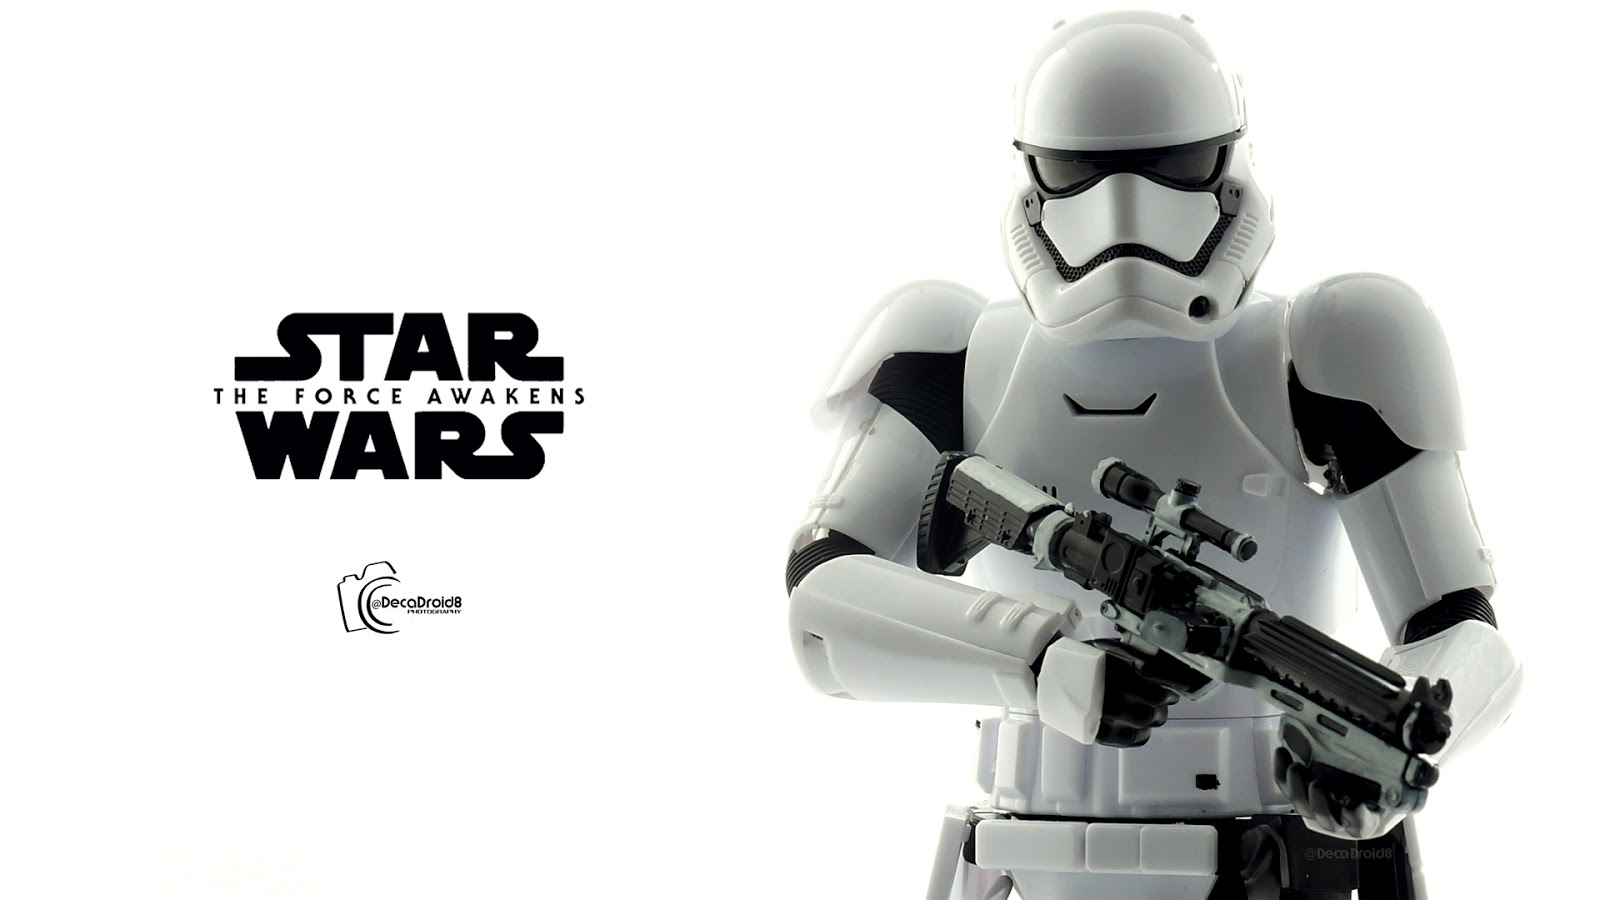 bandai star wars first order stormtrooper by decadroid8.jpg